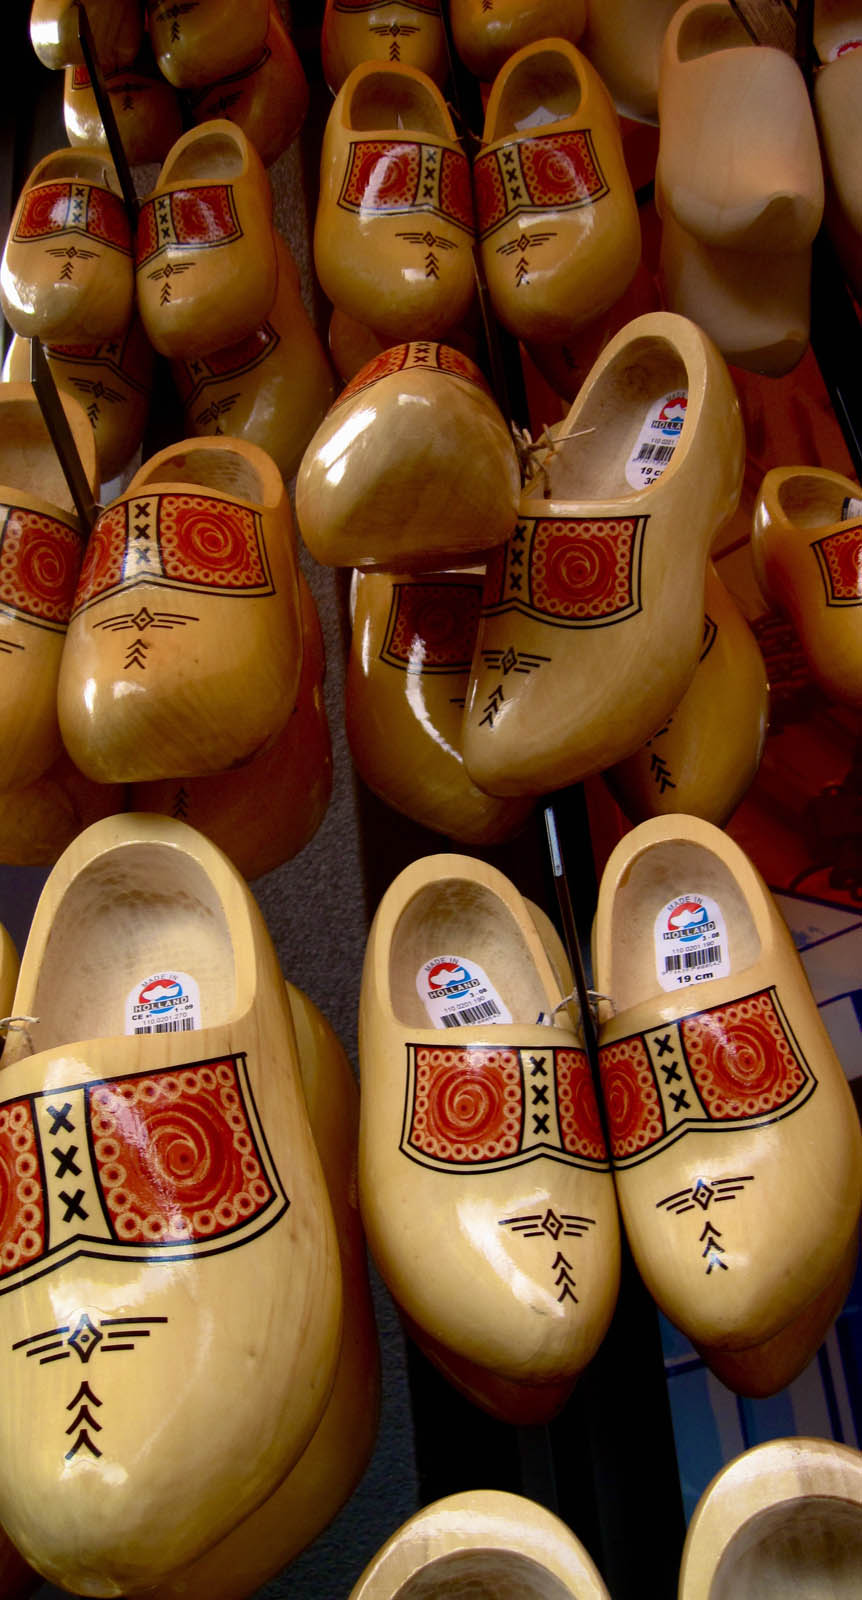 funny clogs traditional holand 8 Funny Clogs the Traditional Holand Footwear